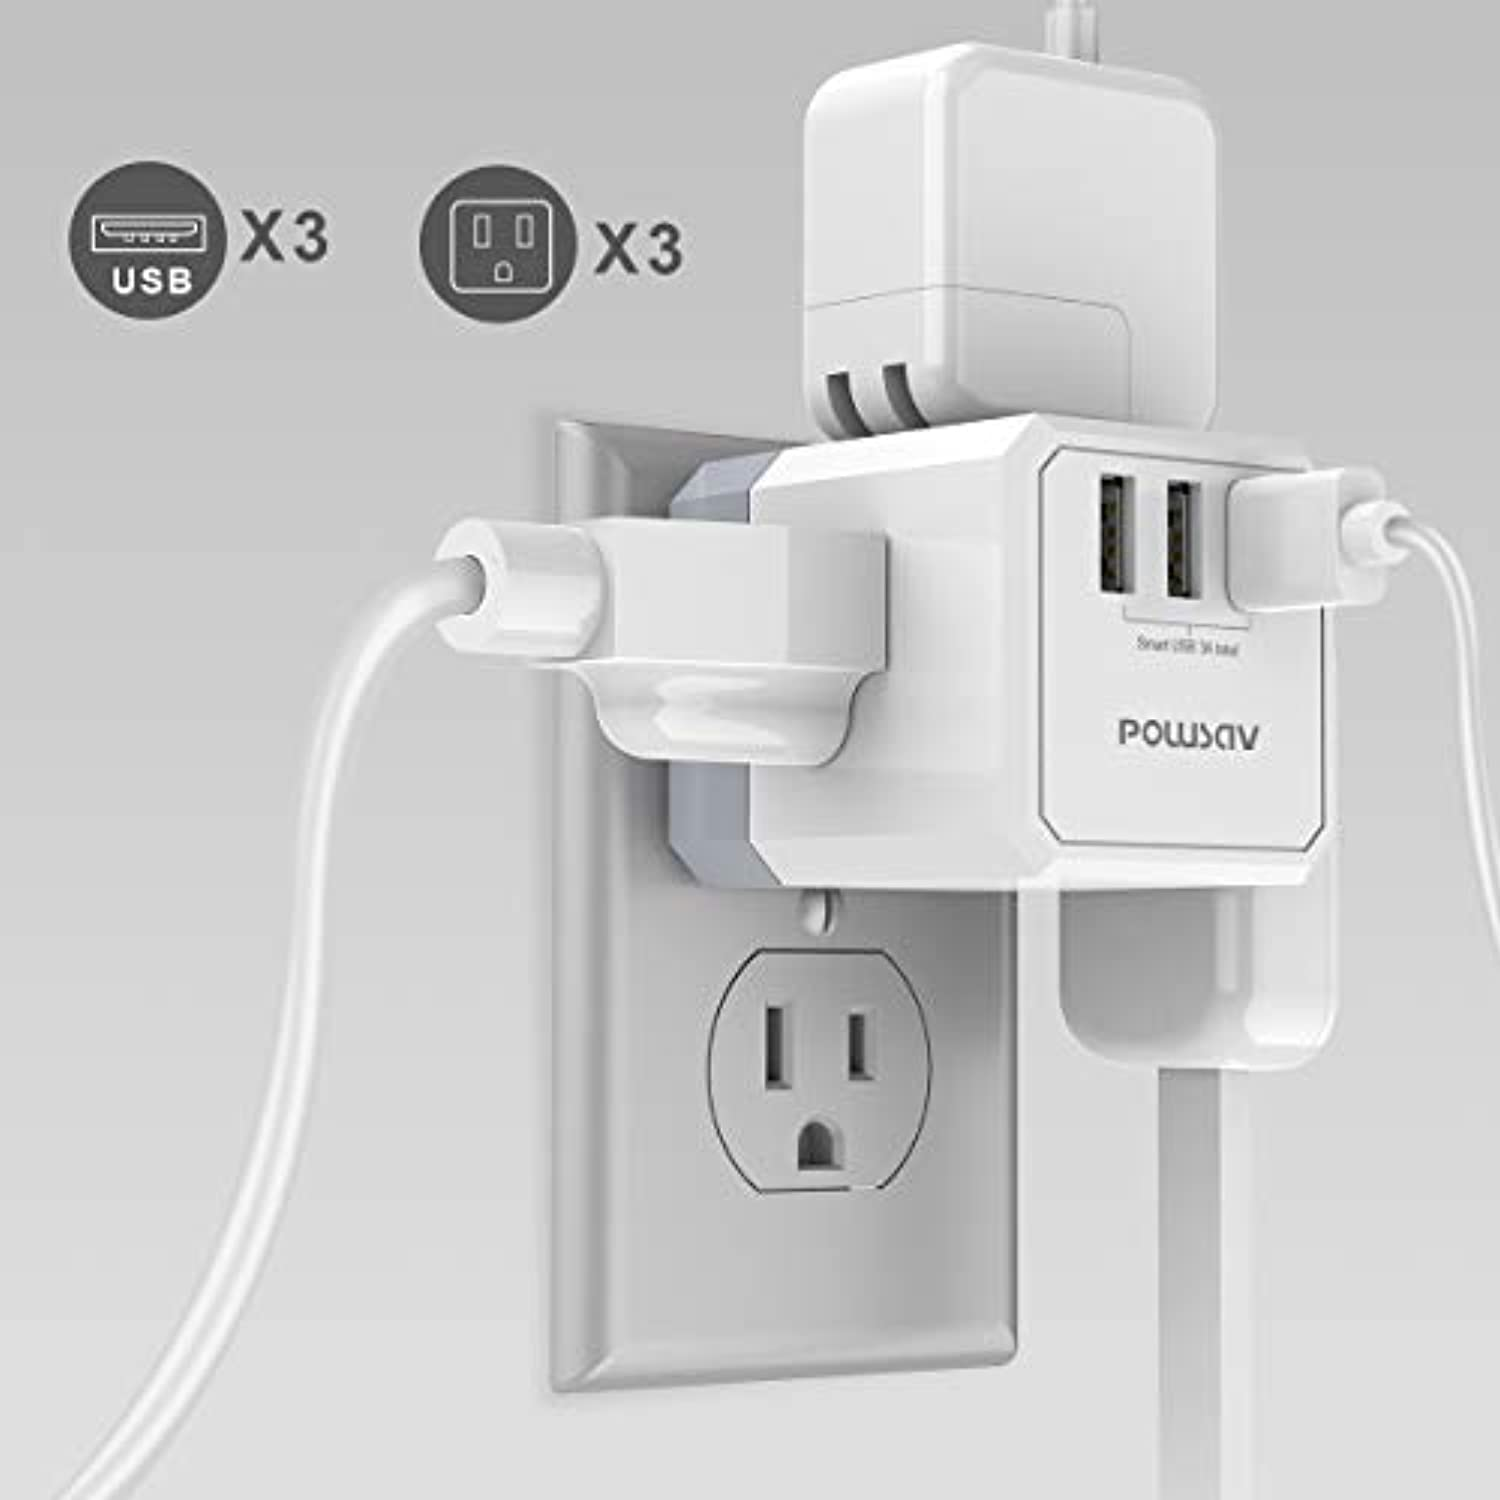 Classier: Buy POWSAV Multi Plug Outlet, Outlet expanders, POWSAV USB Wall Charger with 3 USB Ports(Smart 3.0A Total) and 3-Outlet Extender with 3 Way Splitter, No Surge Protector for Cruise Ship, Home, Office, ETL Listed